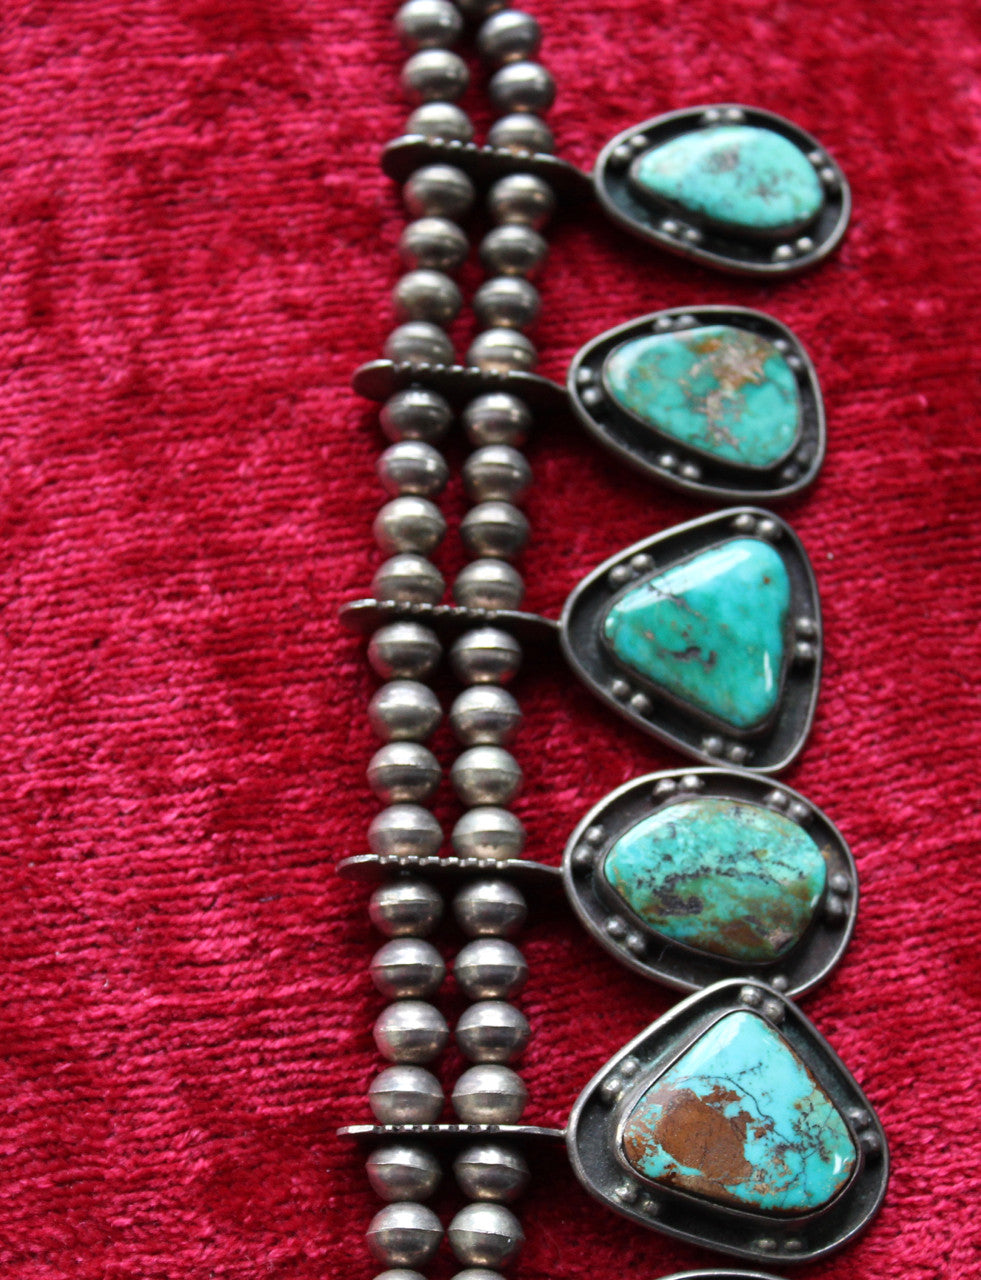 Vintage 50's Navajo Turquoise And Silver Squash Blossom Necklace Jewelry